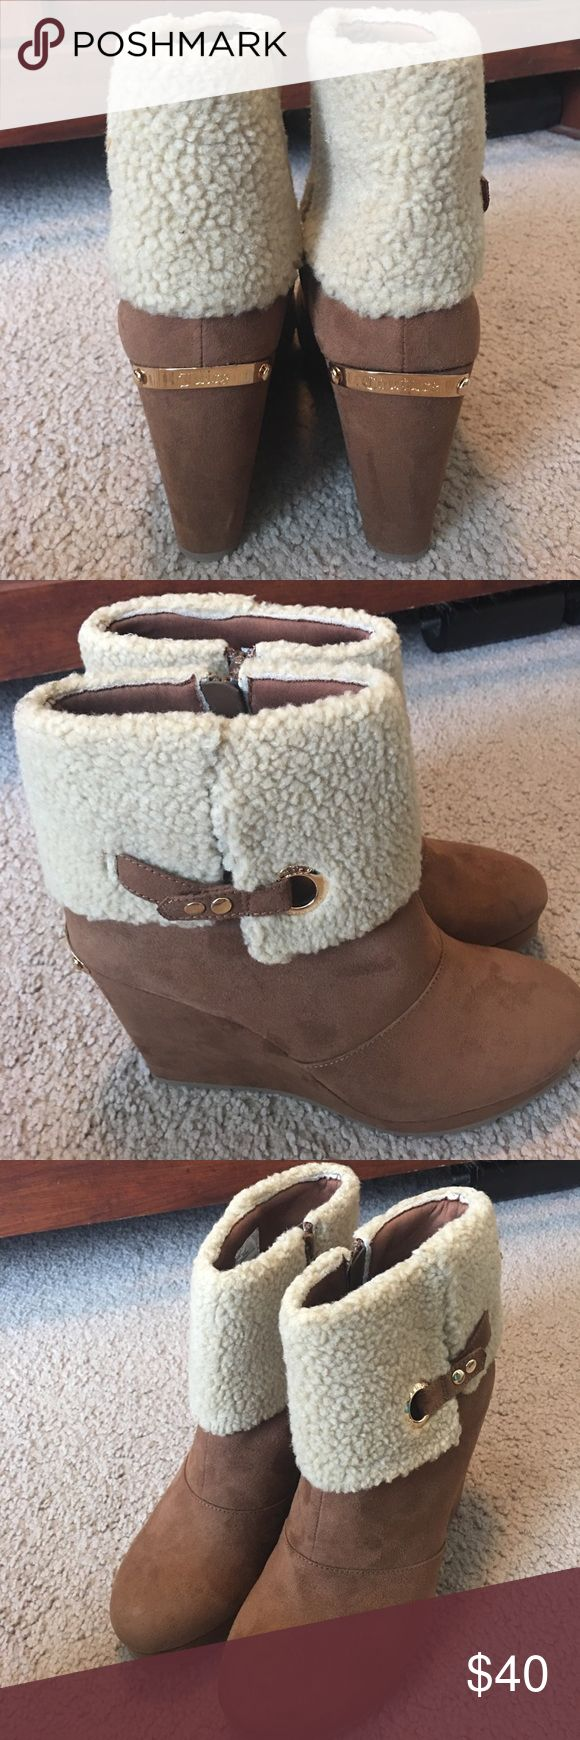 Juicy Couture fur ankle wedge boots Size 10 Brand new without box ankle boots. Brown suede and tan fur. Juicy Couture Shoes Ankle Boots & Booties